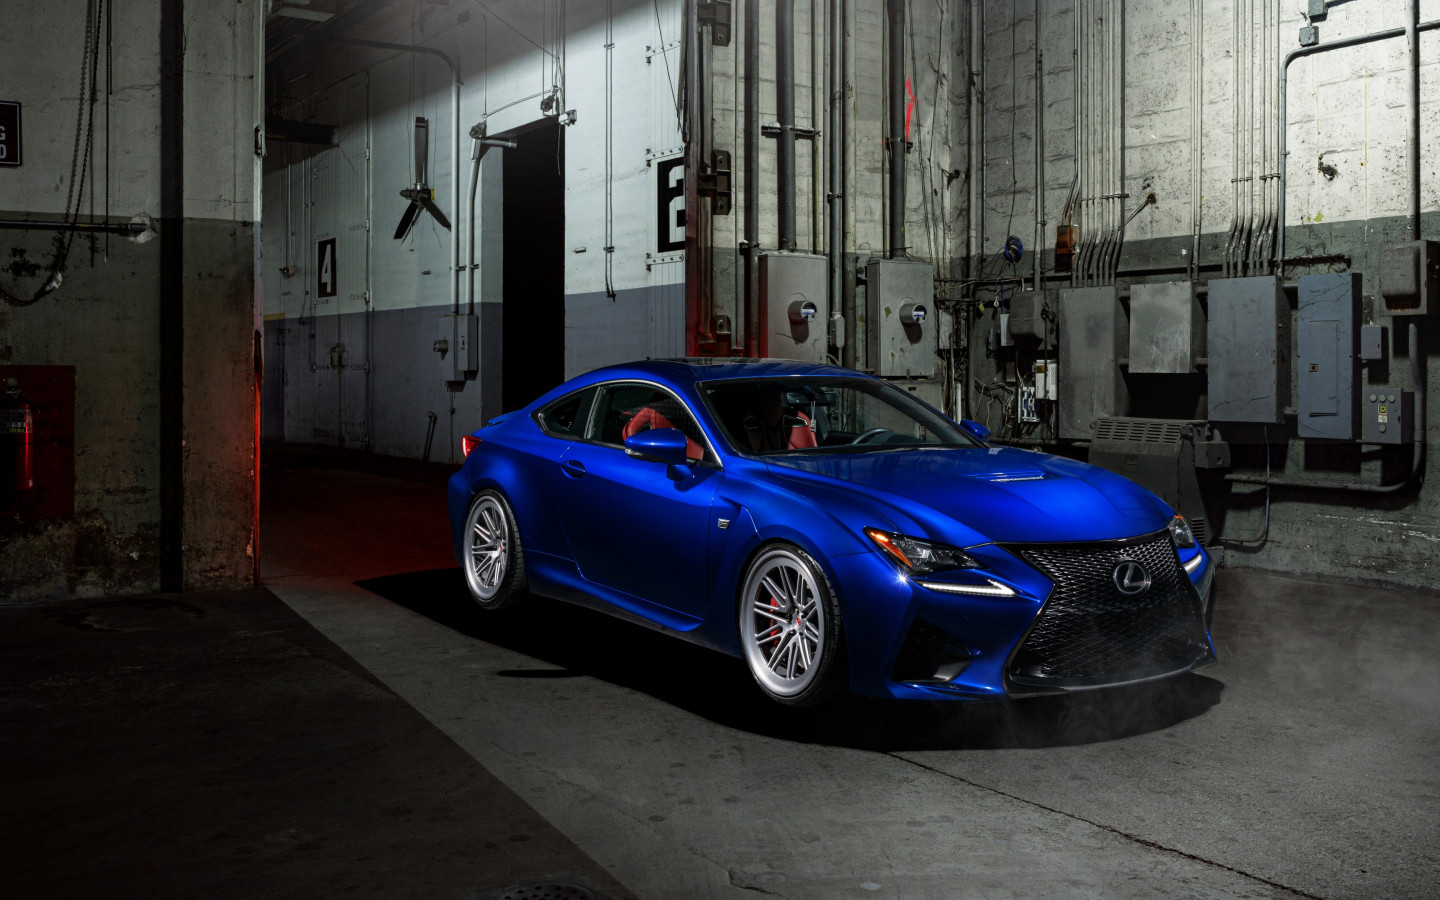 Blue Lexus RC F wallpaper 1440x900